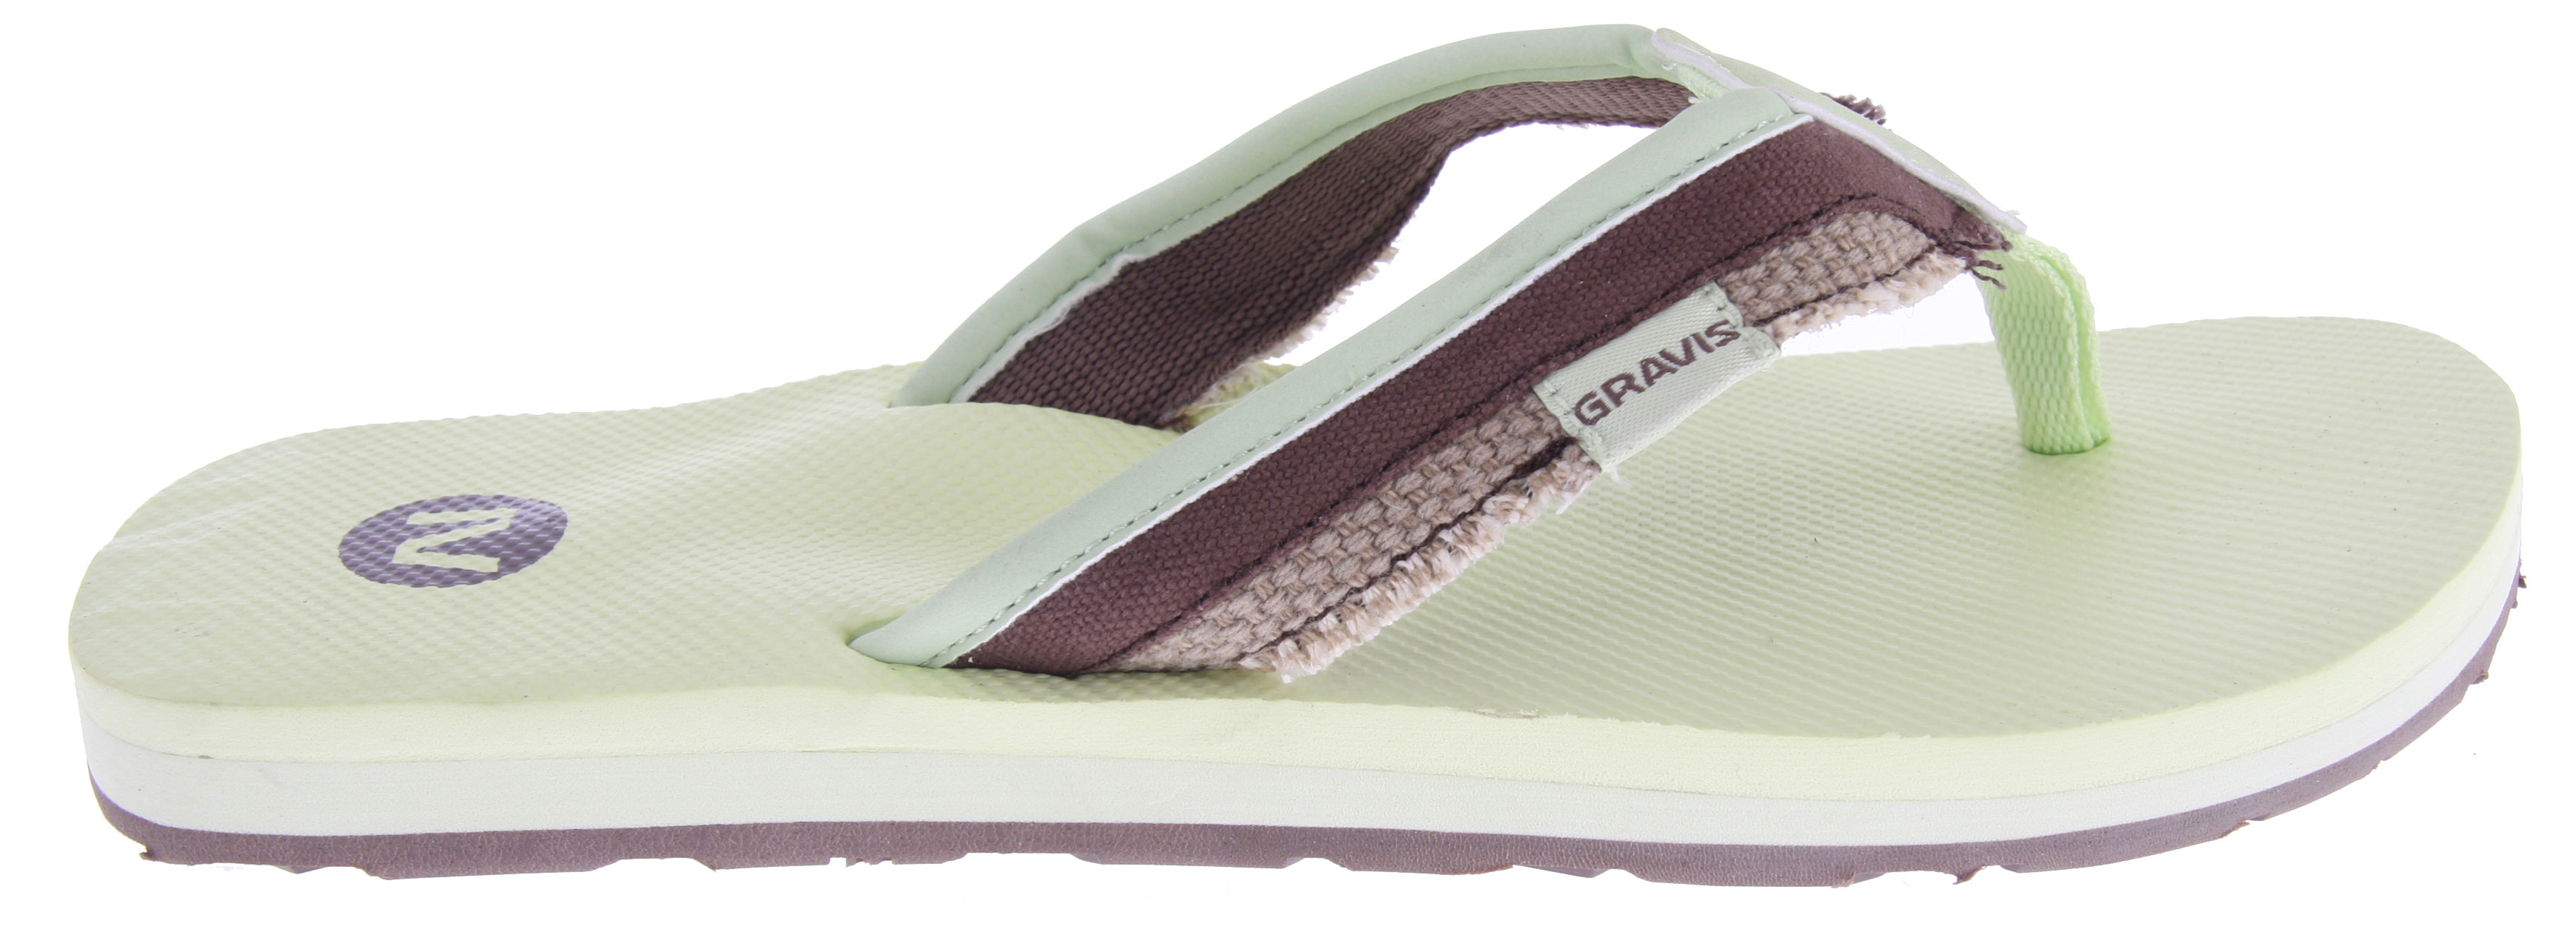 Surf Key Features of the Gravis Hemperpedic Sandals: Canvas strap with a roll stitch design Supercush recyclable form fit memory foam Arch support in the footbed for added comfort. Screenprint of Gravis logo on footbed. Durable synthetic outsole for traction. - $7.95